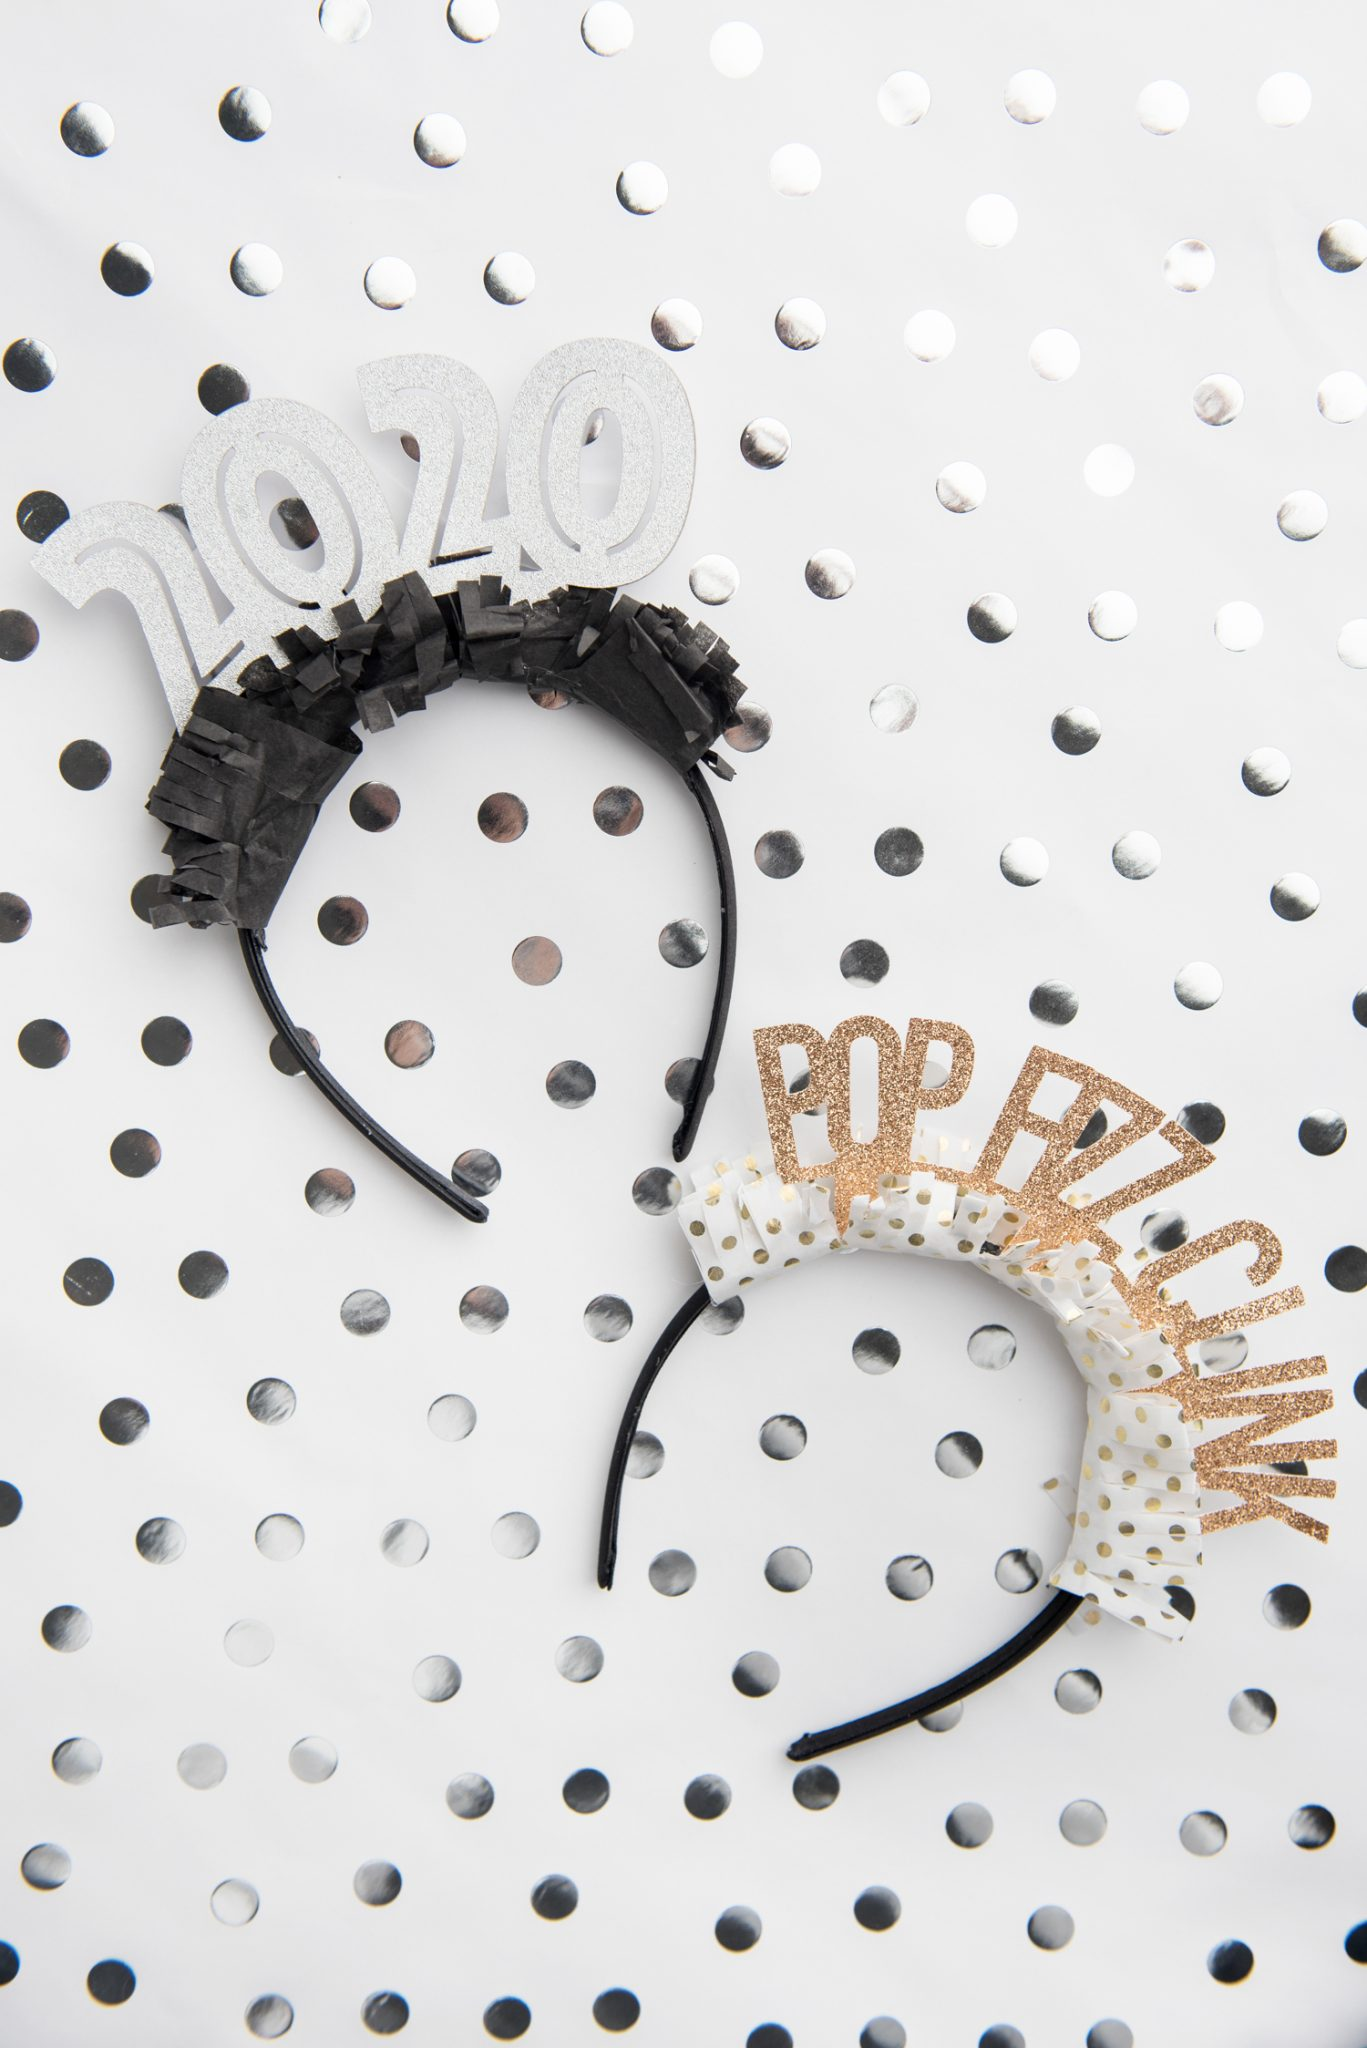 Make these New Year's Eve party headbands on your Cricut or other electronic cutting machine! Perfect for New Year's Eve celebrations and ringing in the new year!